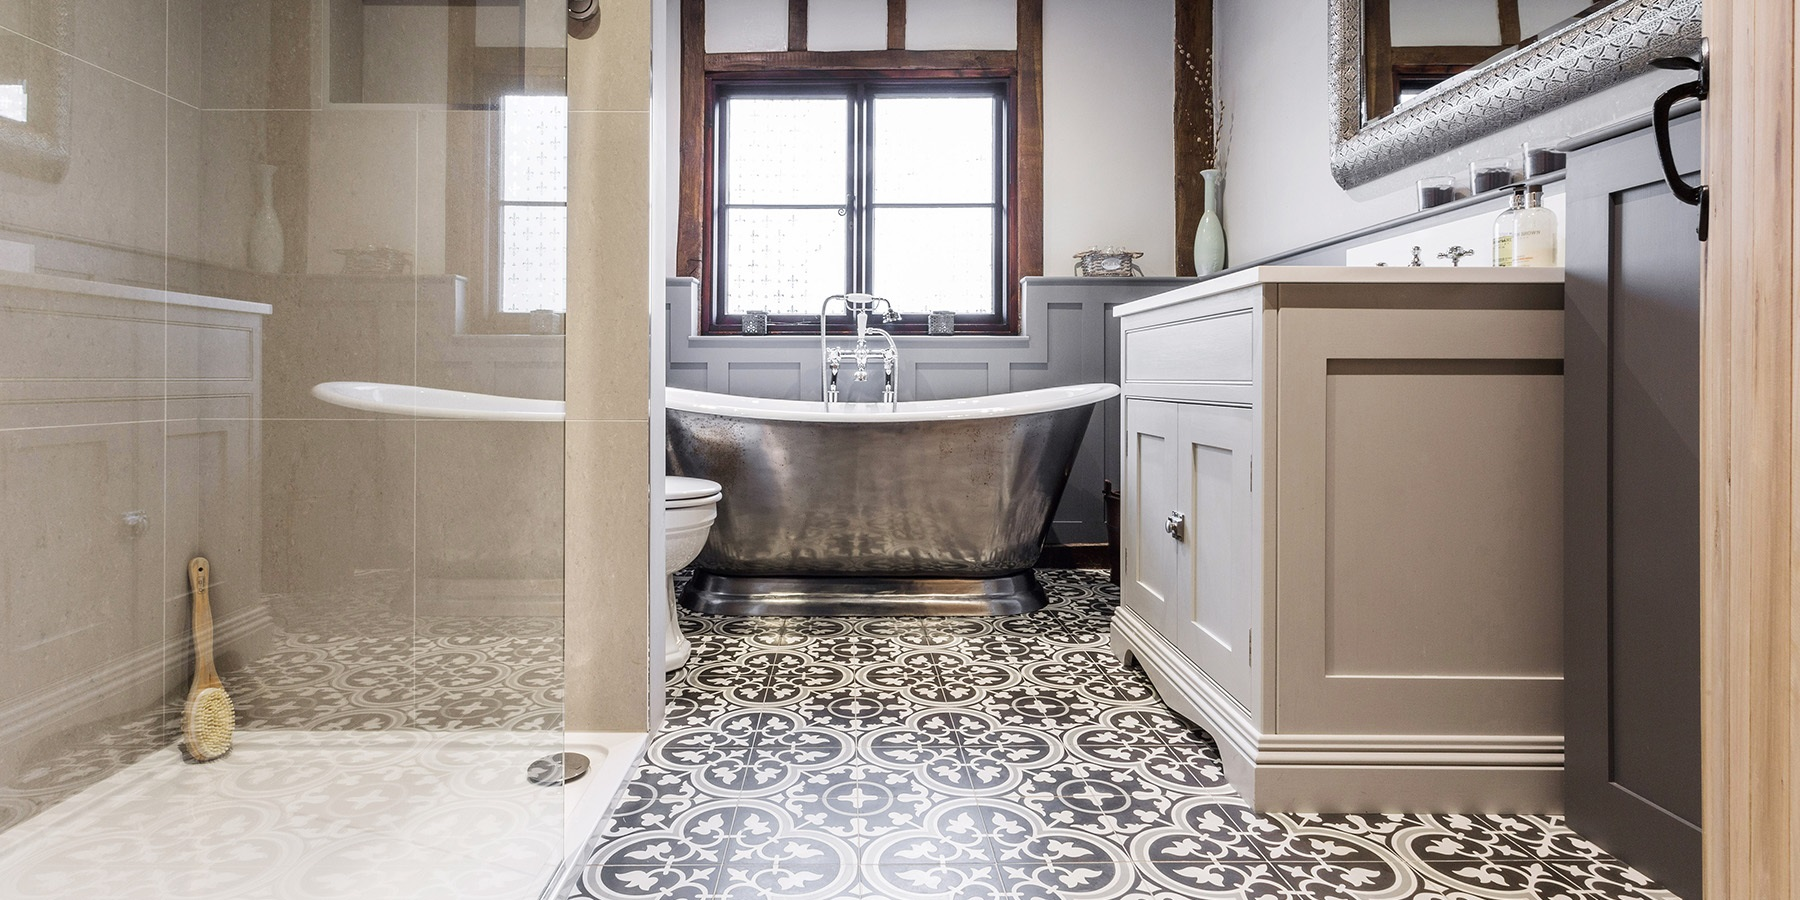 Luxury, Bespoke Family Bathroom - Beautiful family bathroom in an converted barn, with handmade bathroom furniture, cast iron Hurlingham bath and encaustic floor tiles by Ca'Pietra.